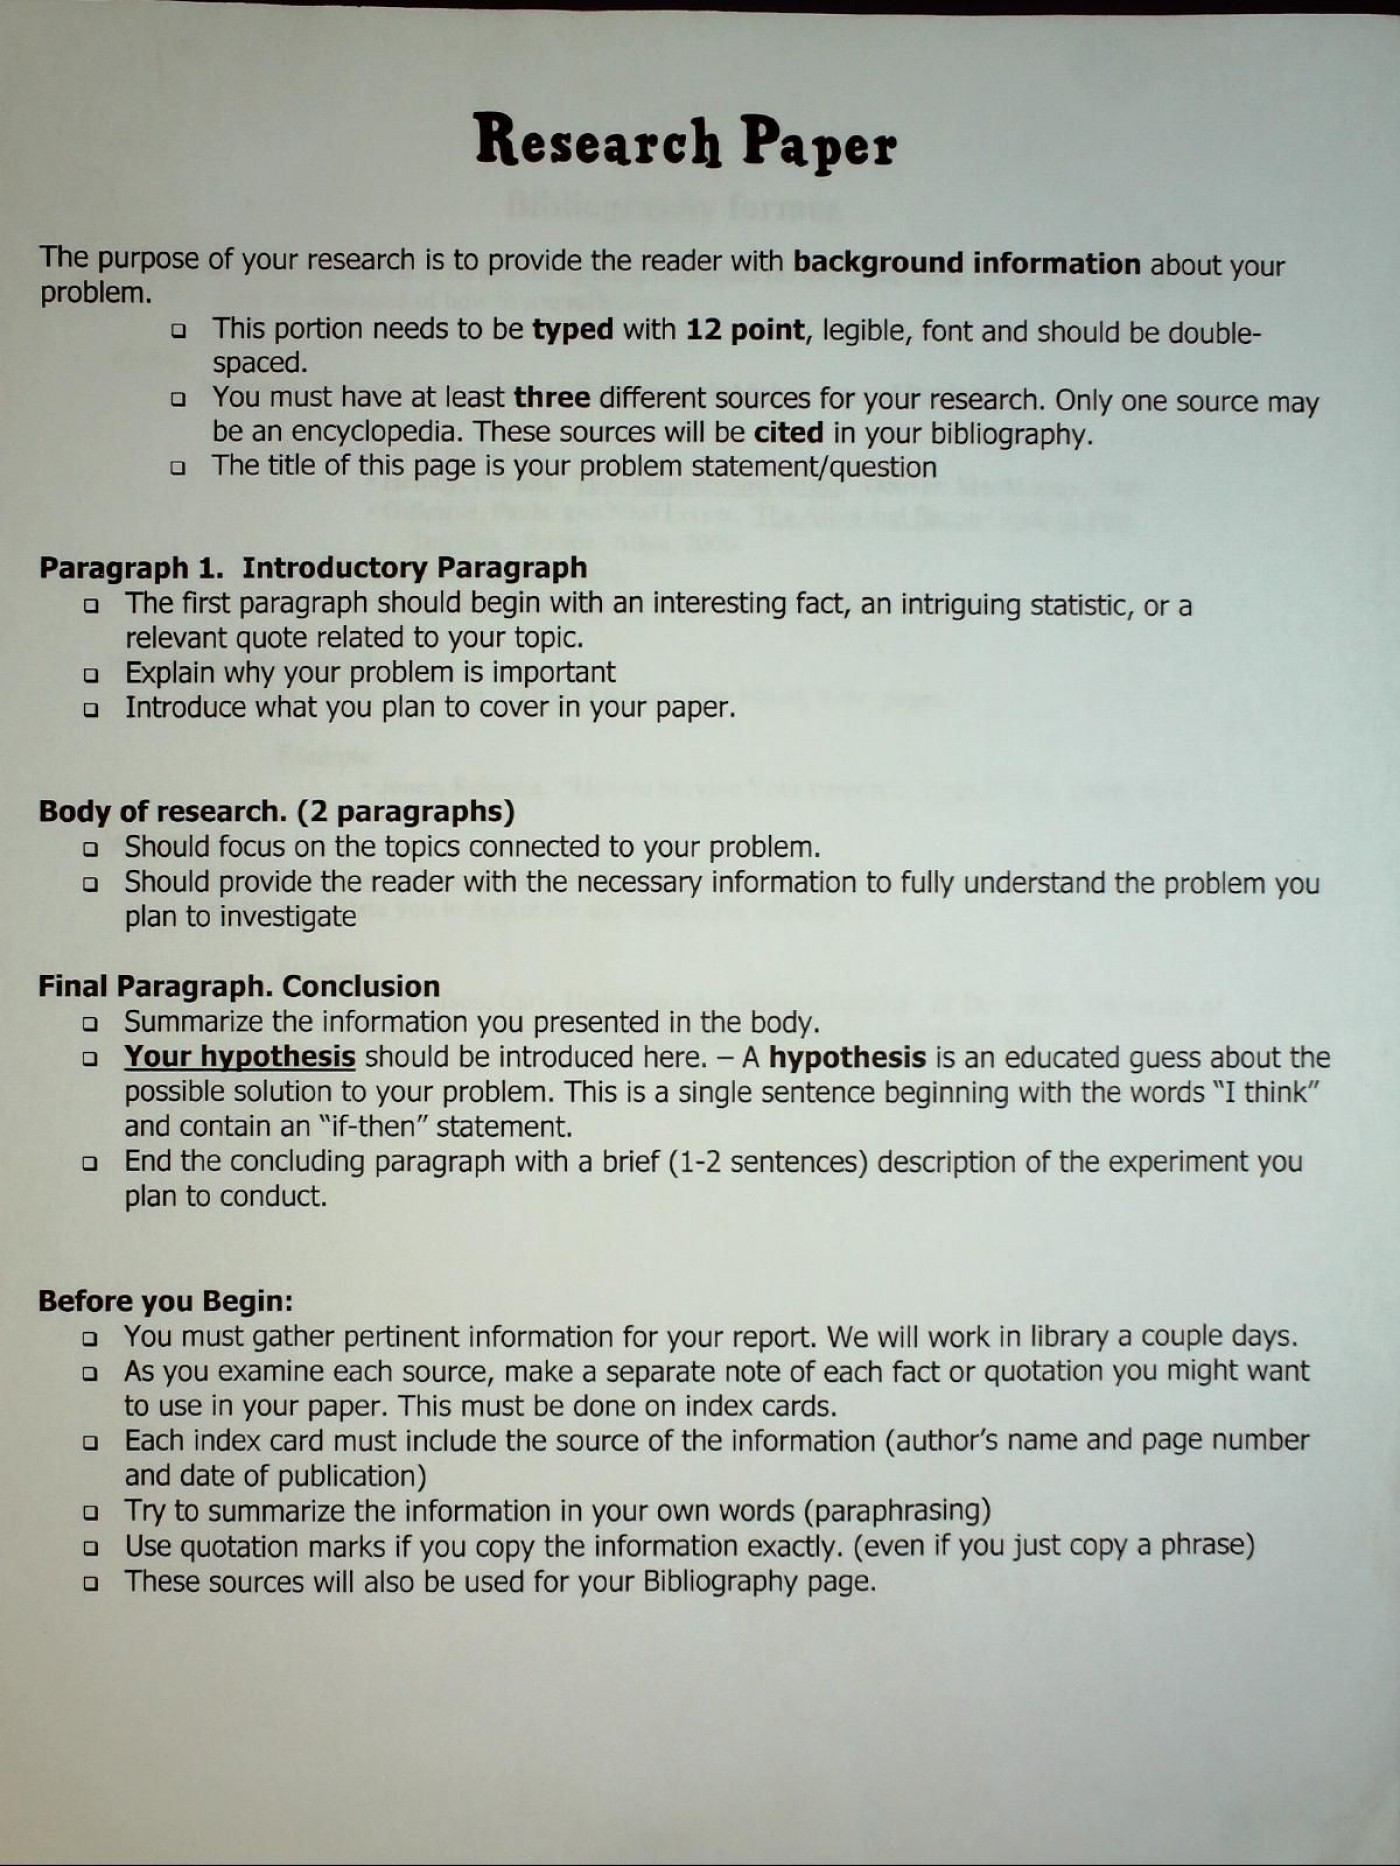 Dissertation research proposal help number for kids